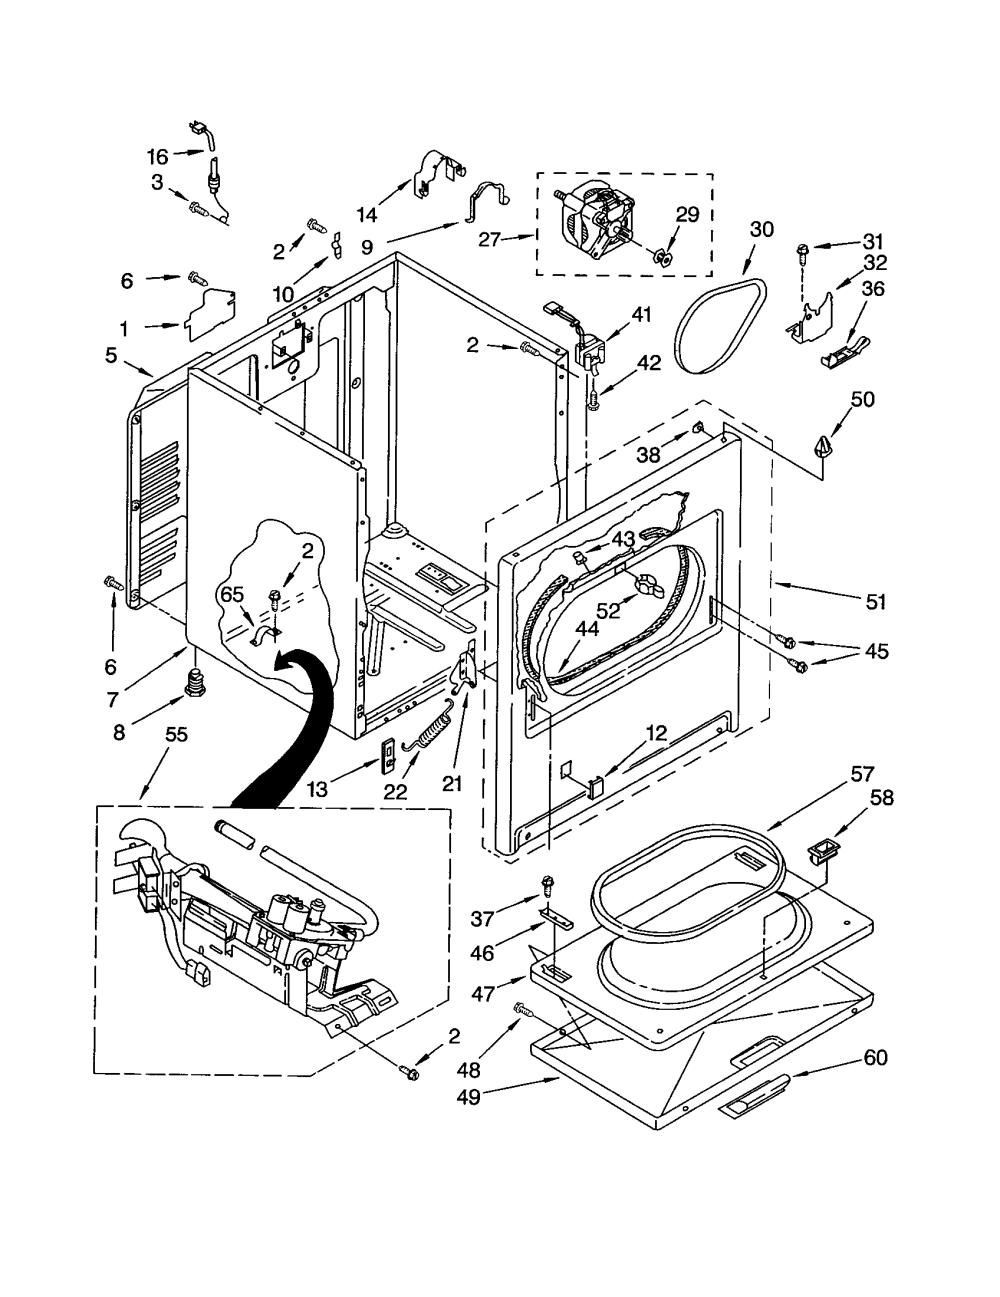 medium resolution of kenmore model 11072812101 residential dryer genuine parts lg dryer wiring diagram sears kenmore dryer wiring diagram